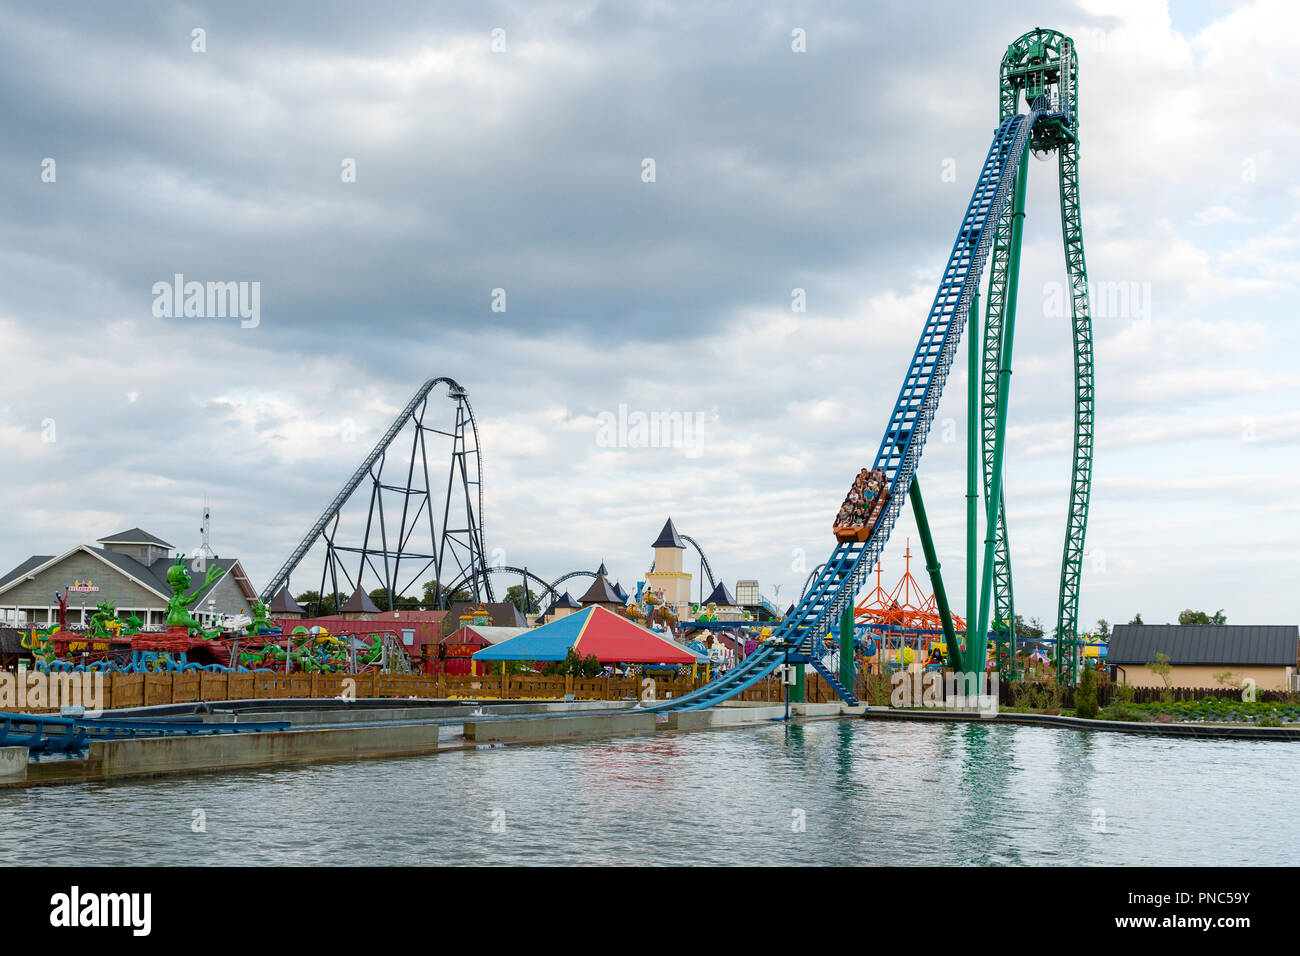 energylandia-the-largest-amusement-park-